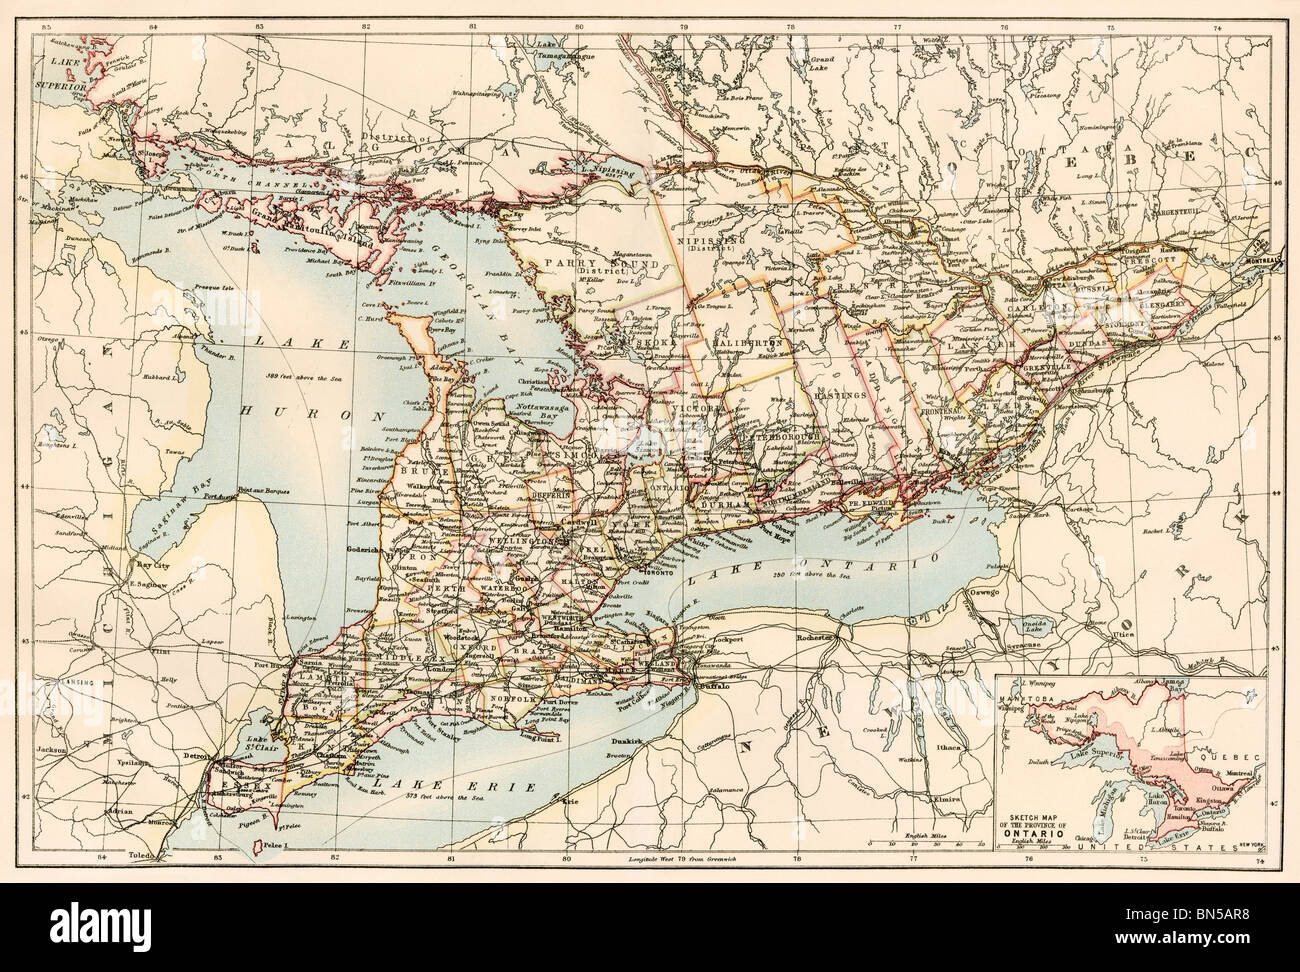 Map Of Canada 1870.Map Of Ontario Canada 1870s Color Lithograph Stock Photo